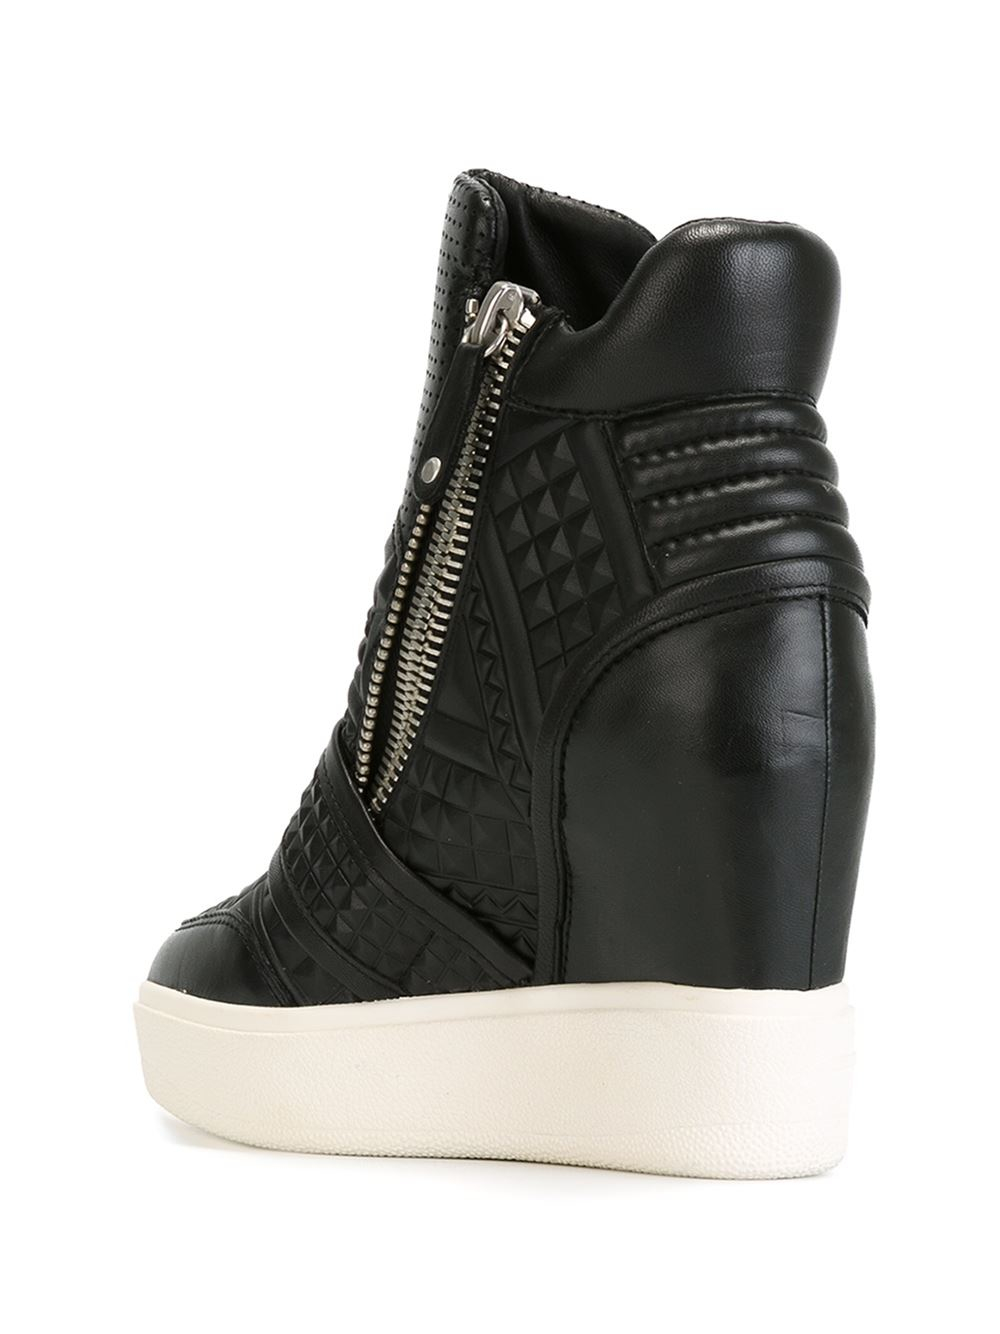 Ash Wedge Sneakers in Black | Lyst